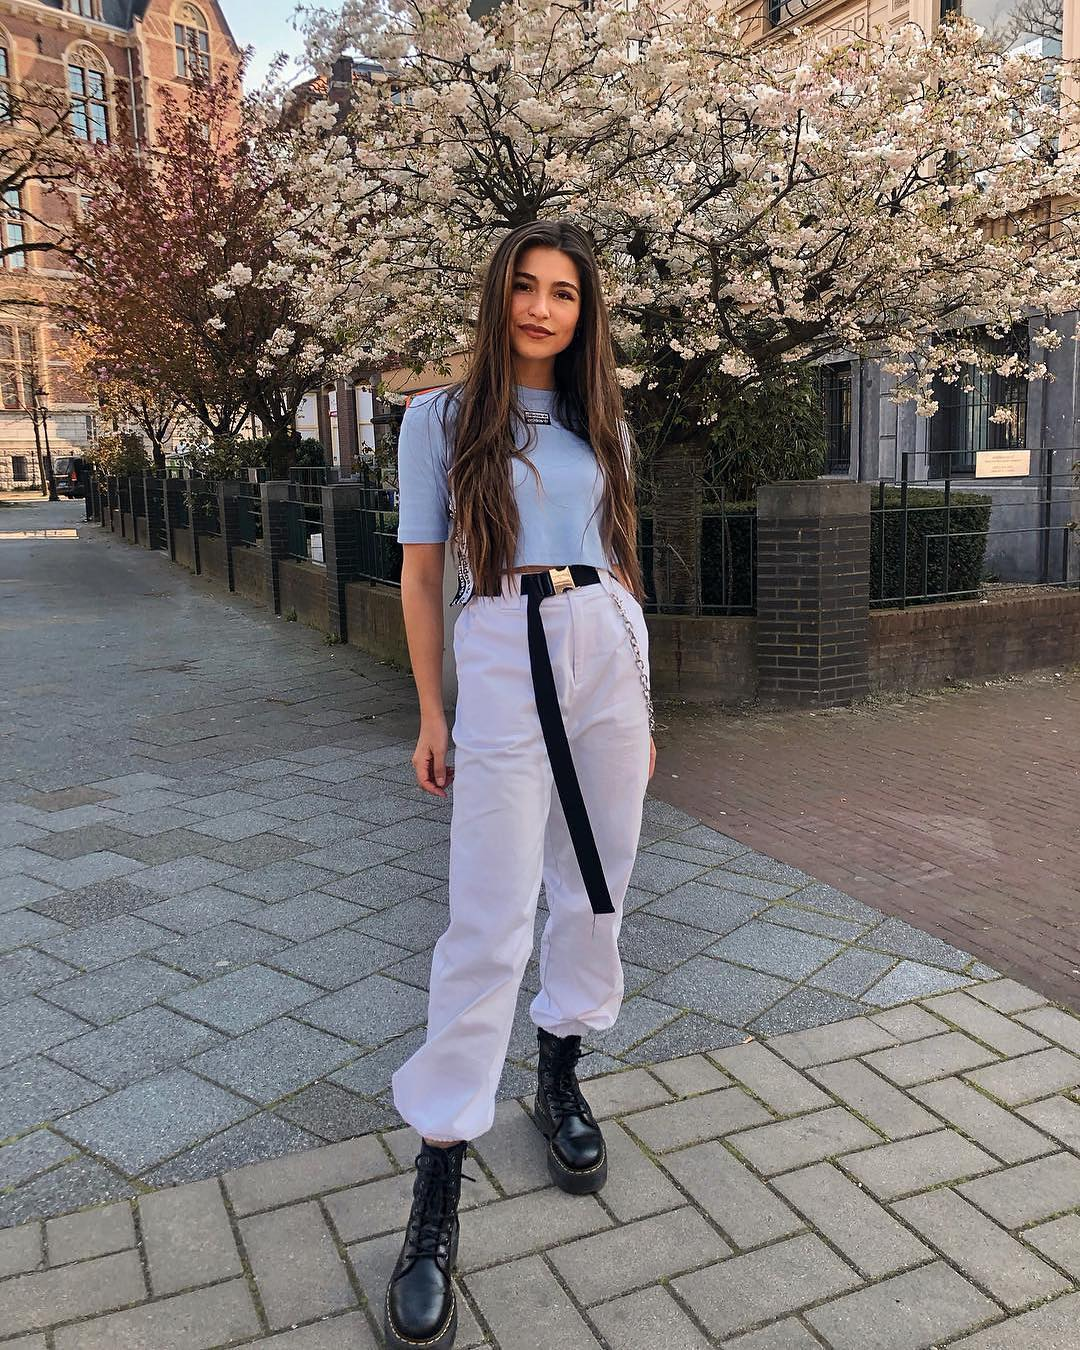 Pastel Blue Top With White Jogger Pants And Black Combat Boots For Summer 2019